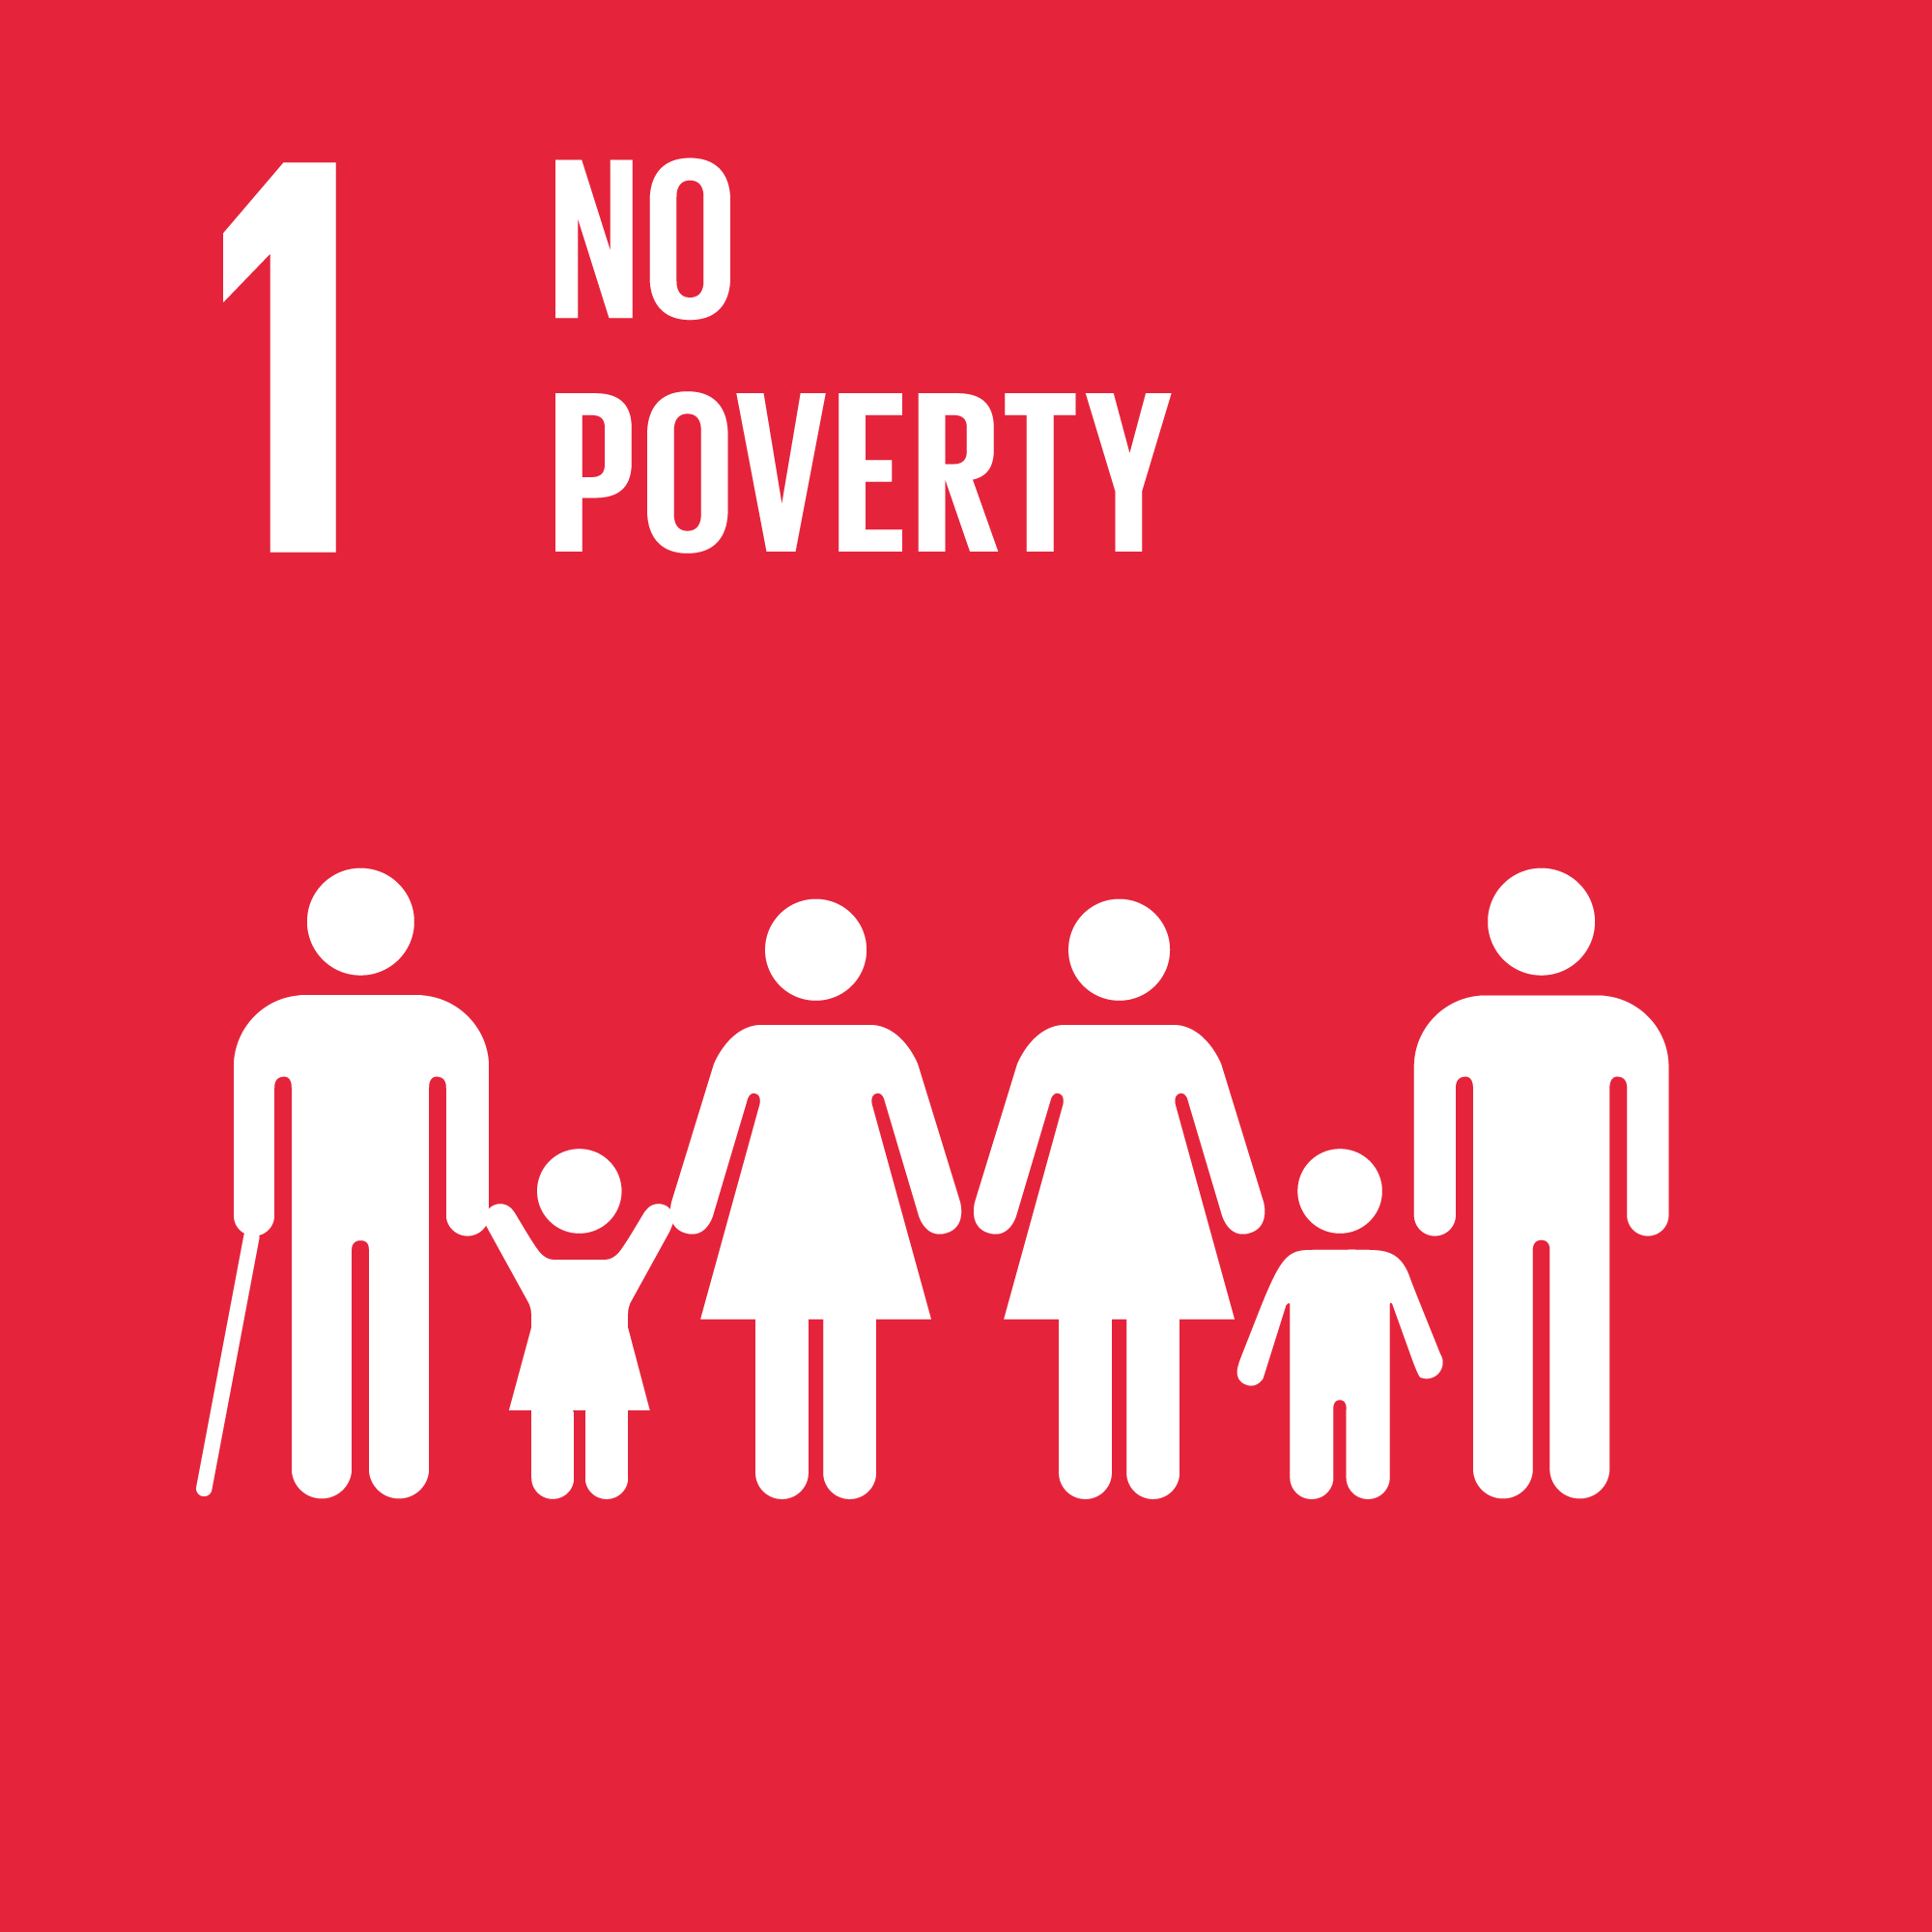 Sustainable Development Goal 1: No Poverty